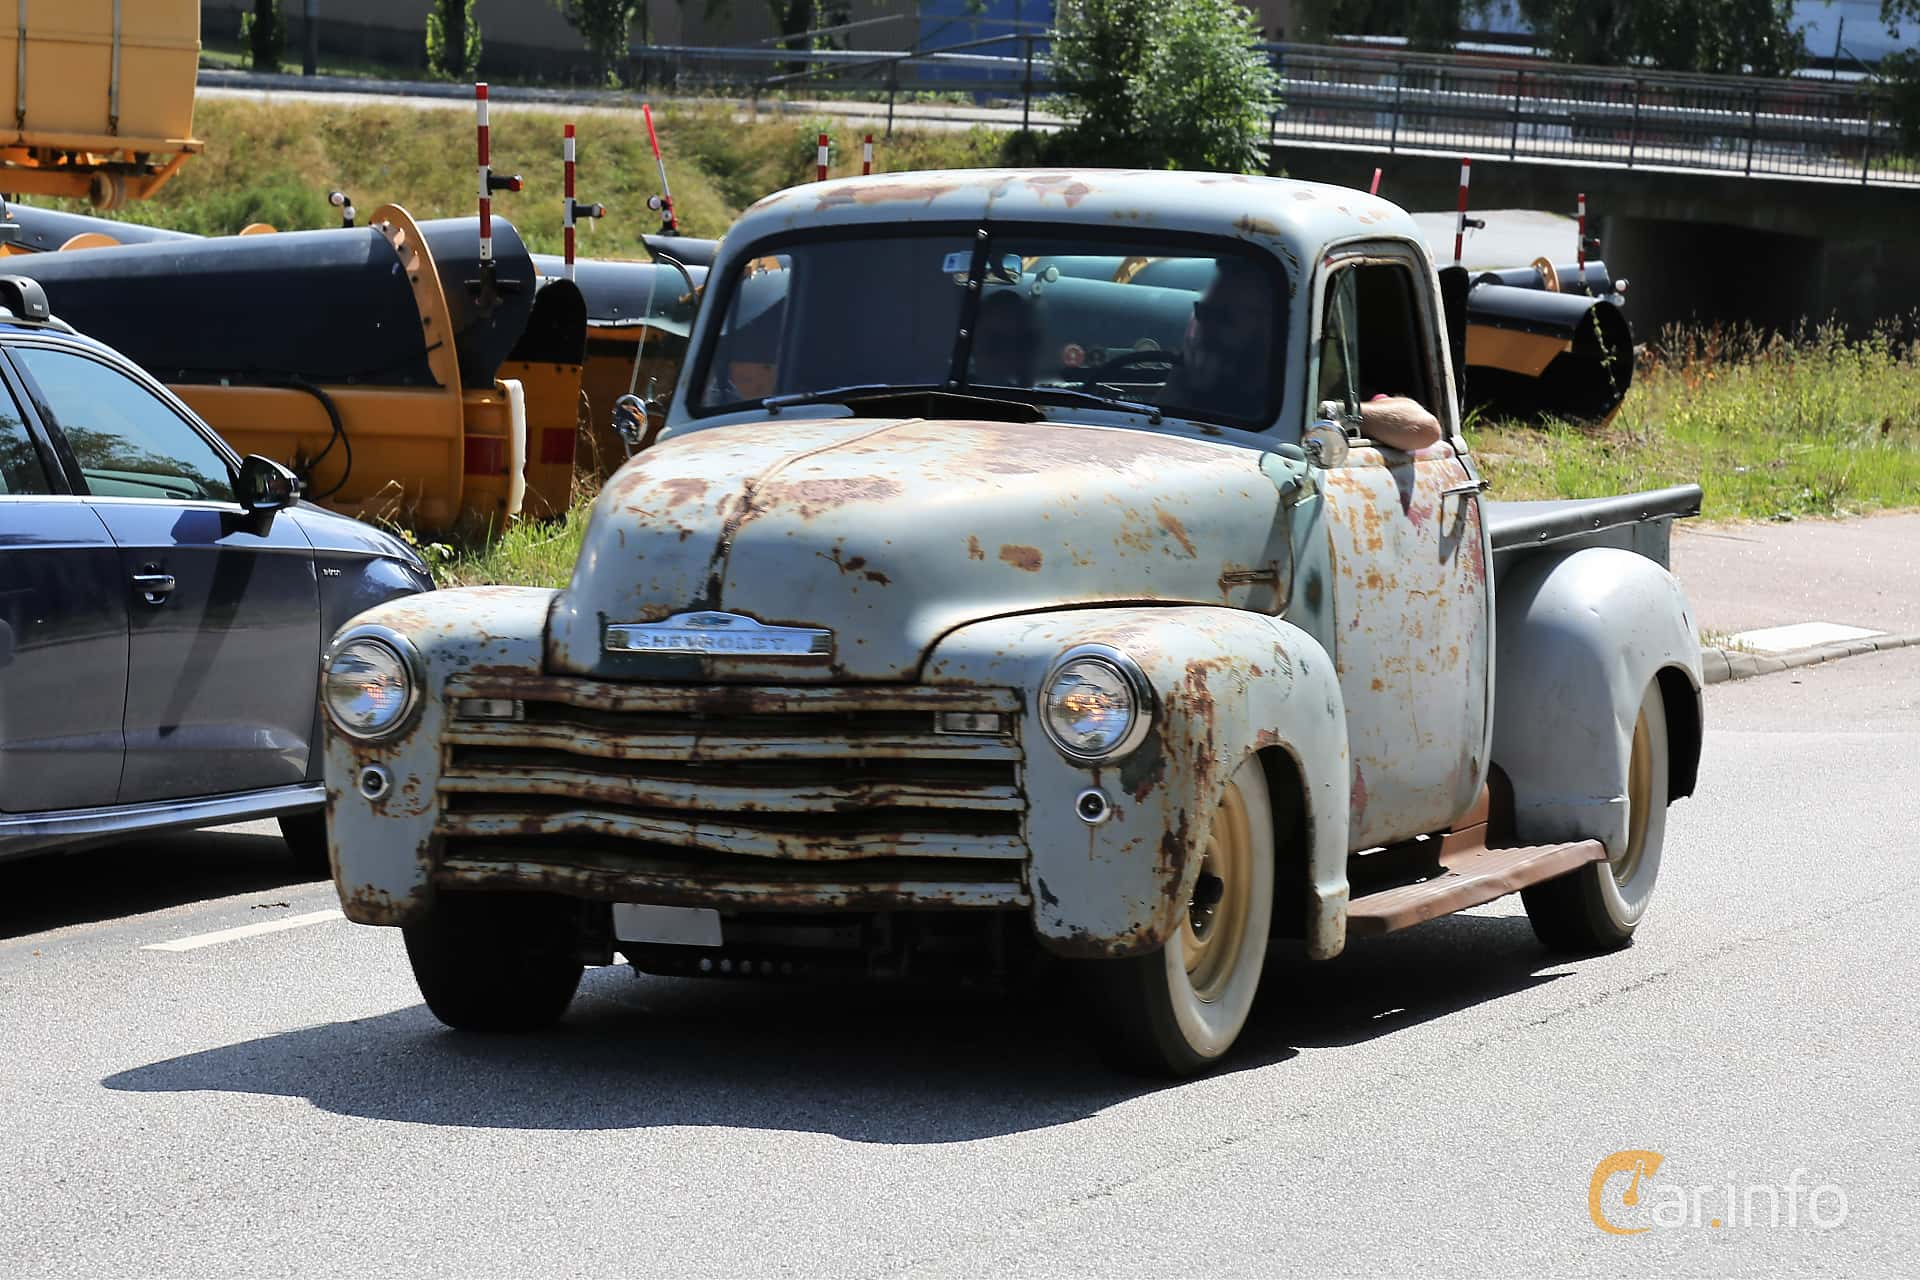 Chevrolet 3100 3.5 Manual, 91hp, 1949 at A-bombers - Old Style Weekend Backamo 2019